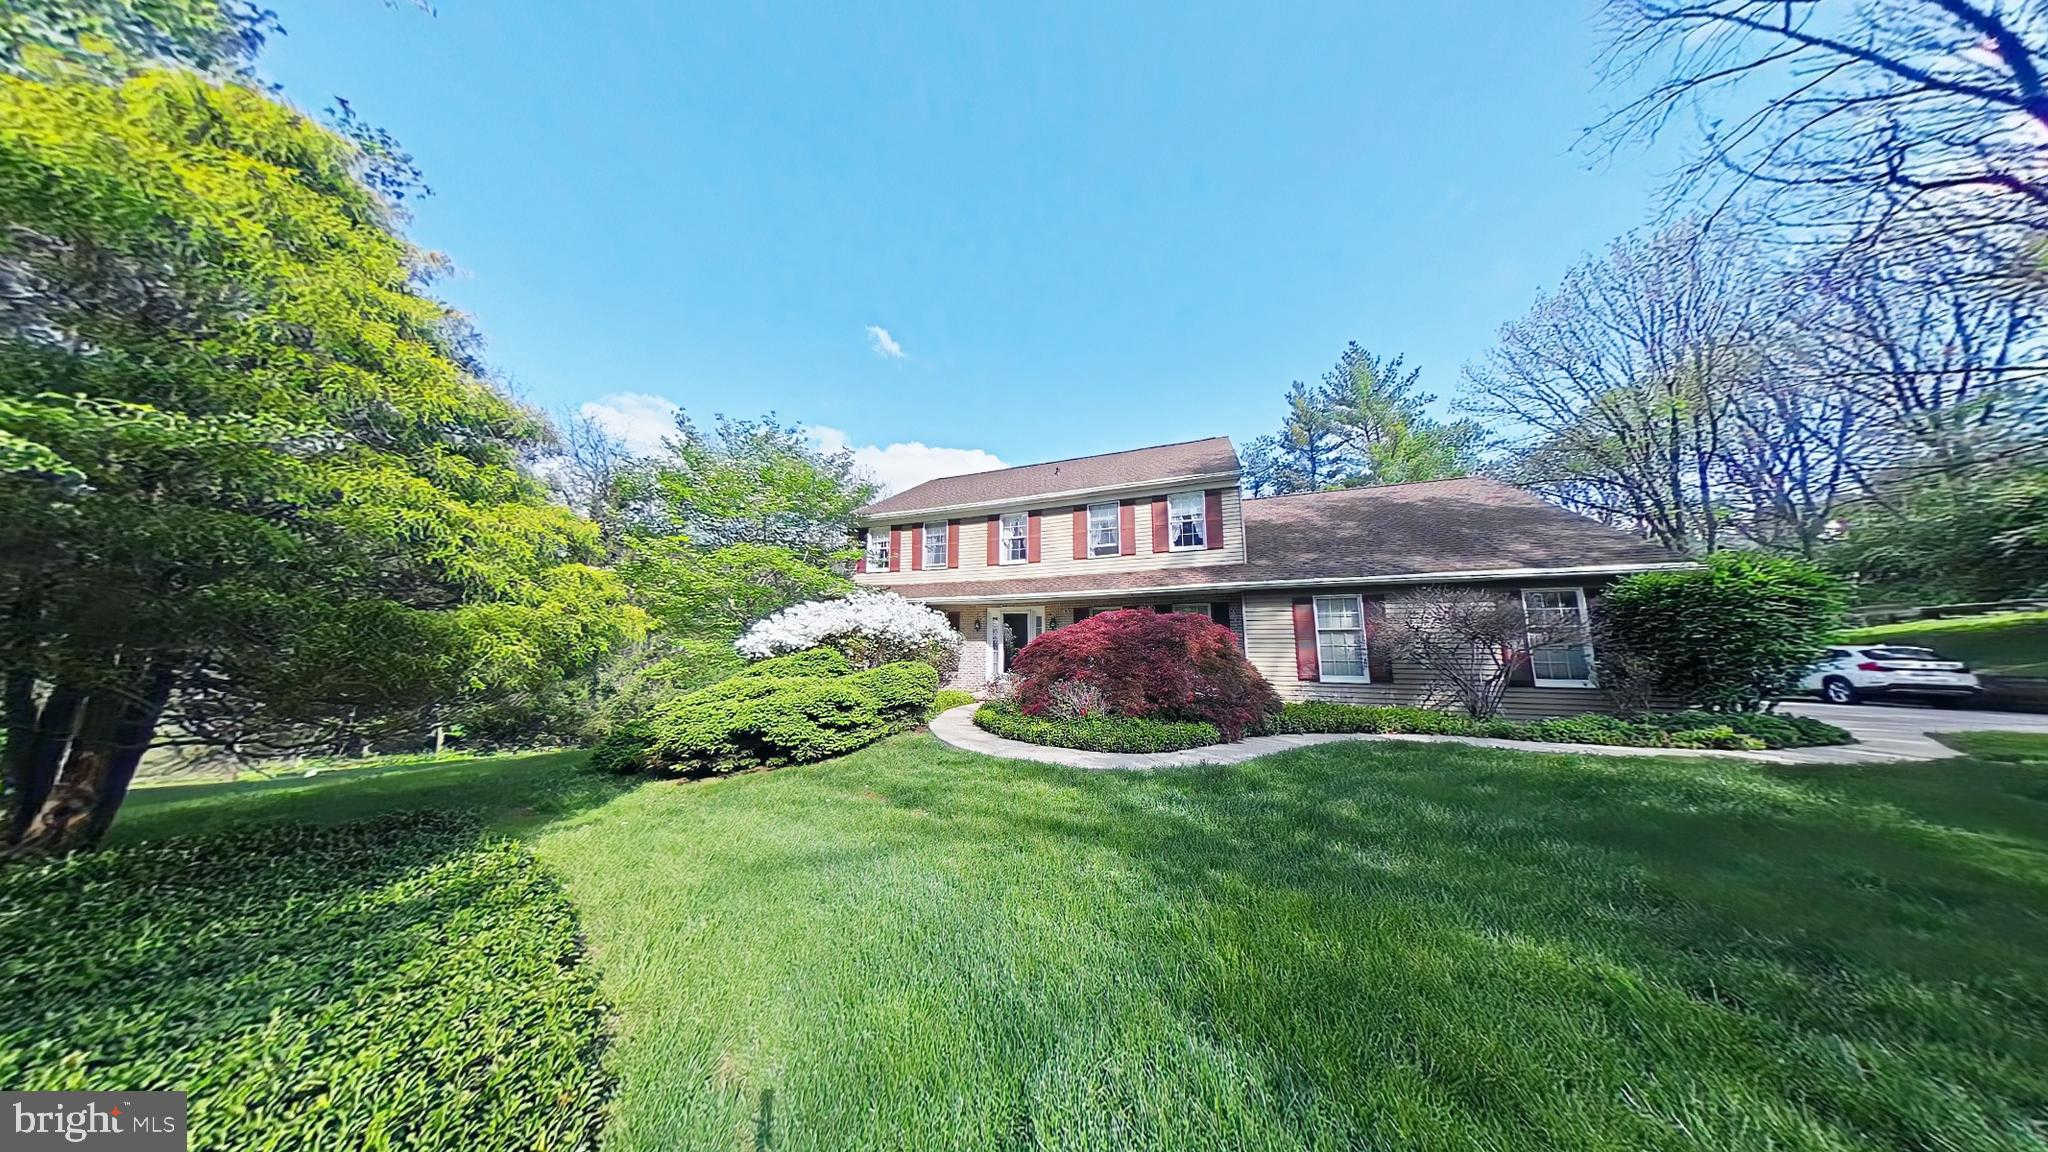 1532 Morgan Lane, Chesterbrook, PA 19087 now has a new price of $780,000!